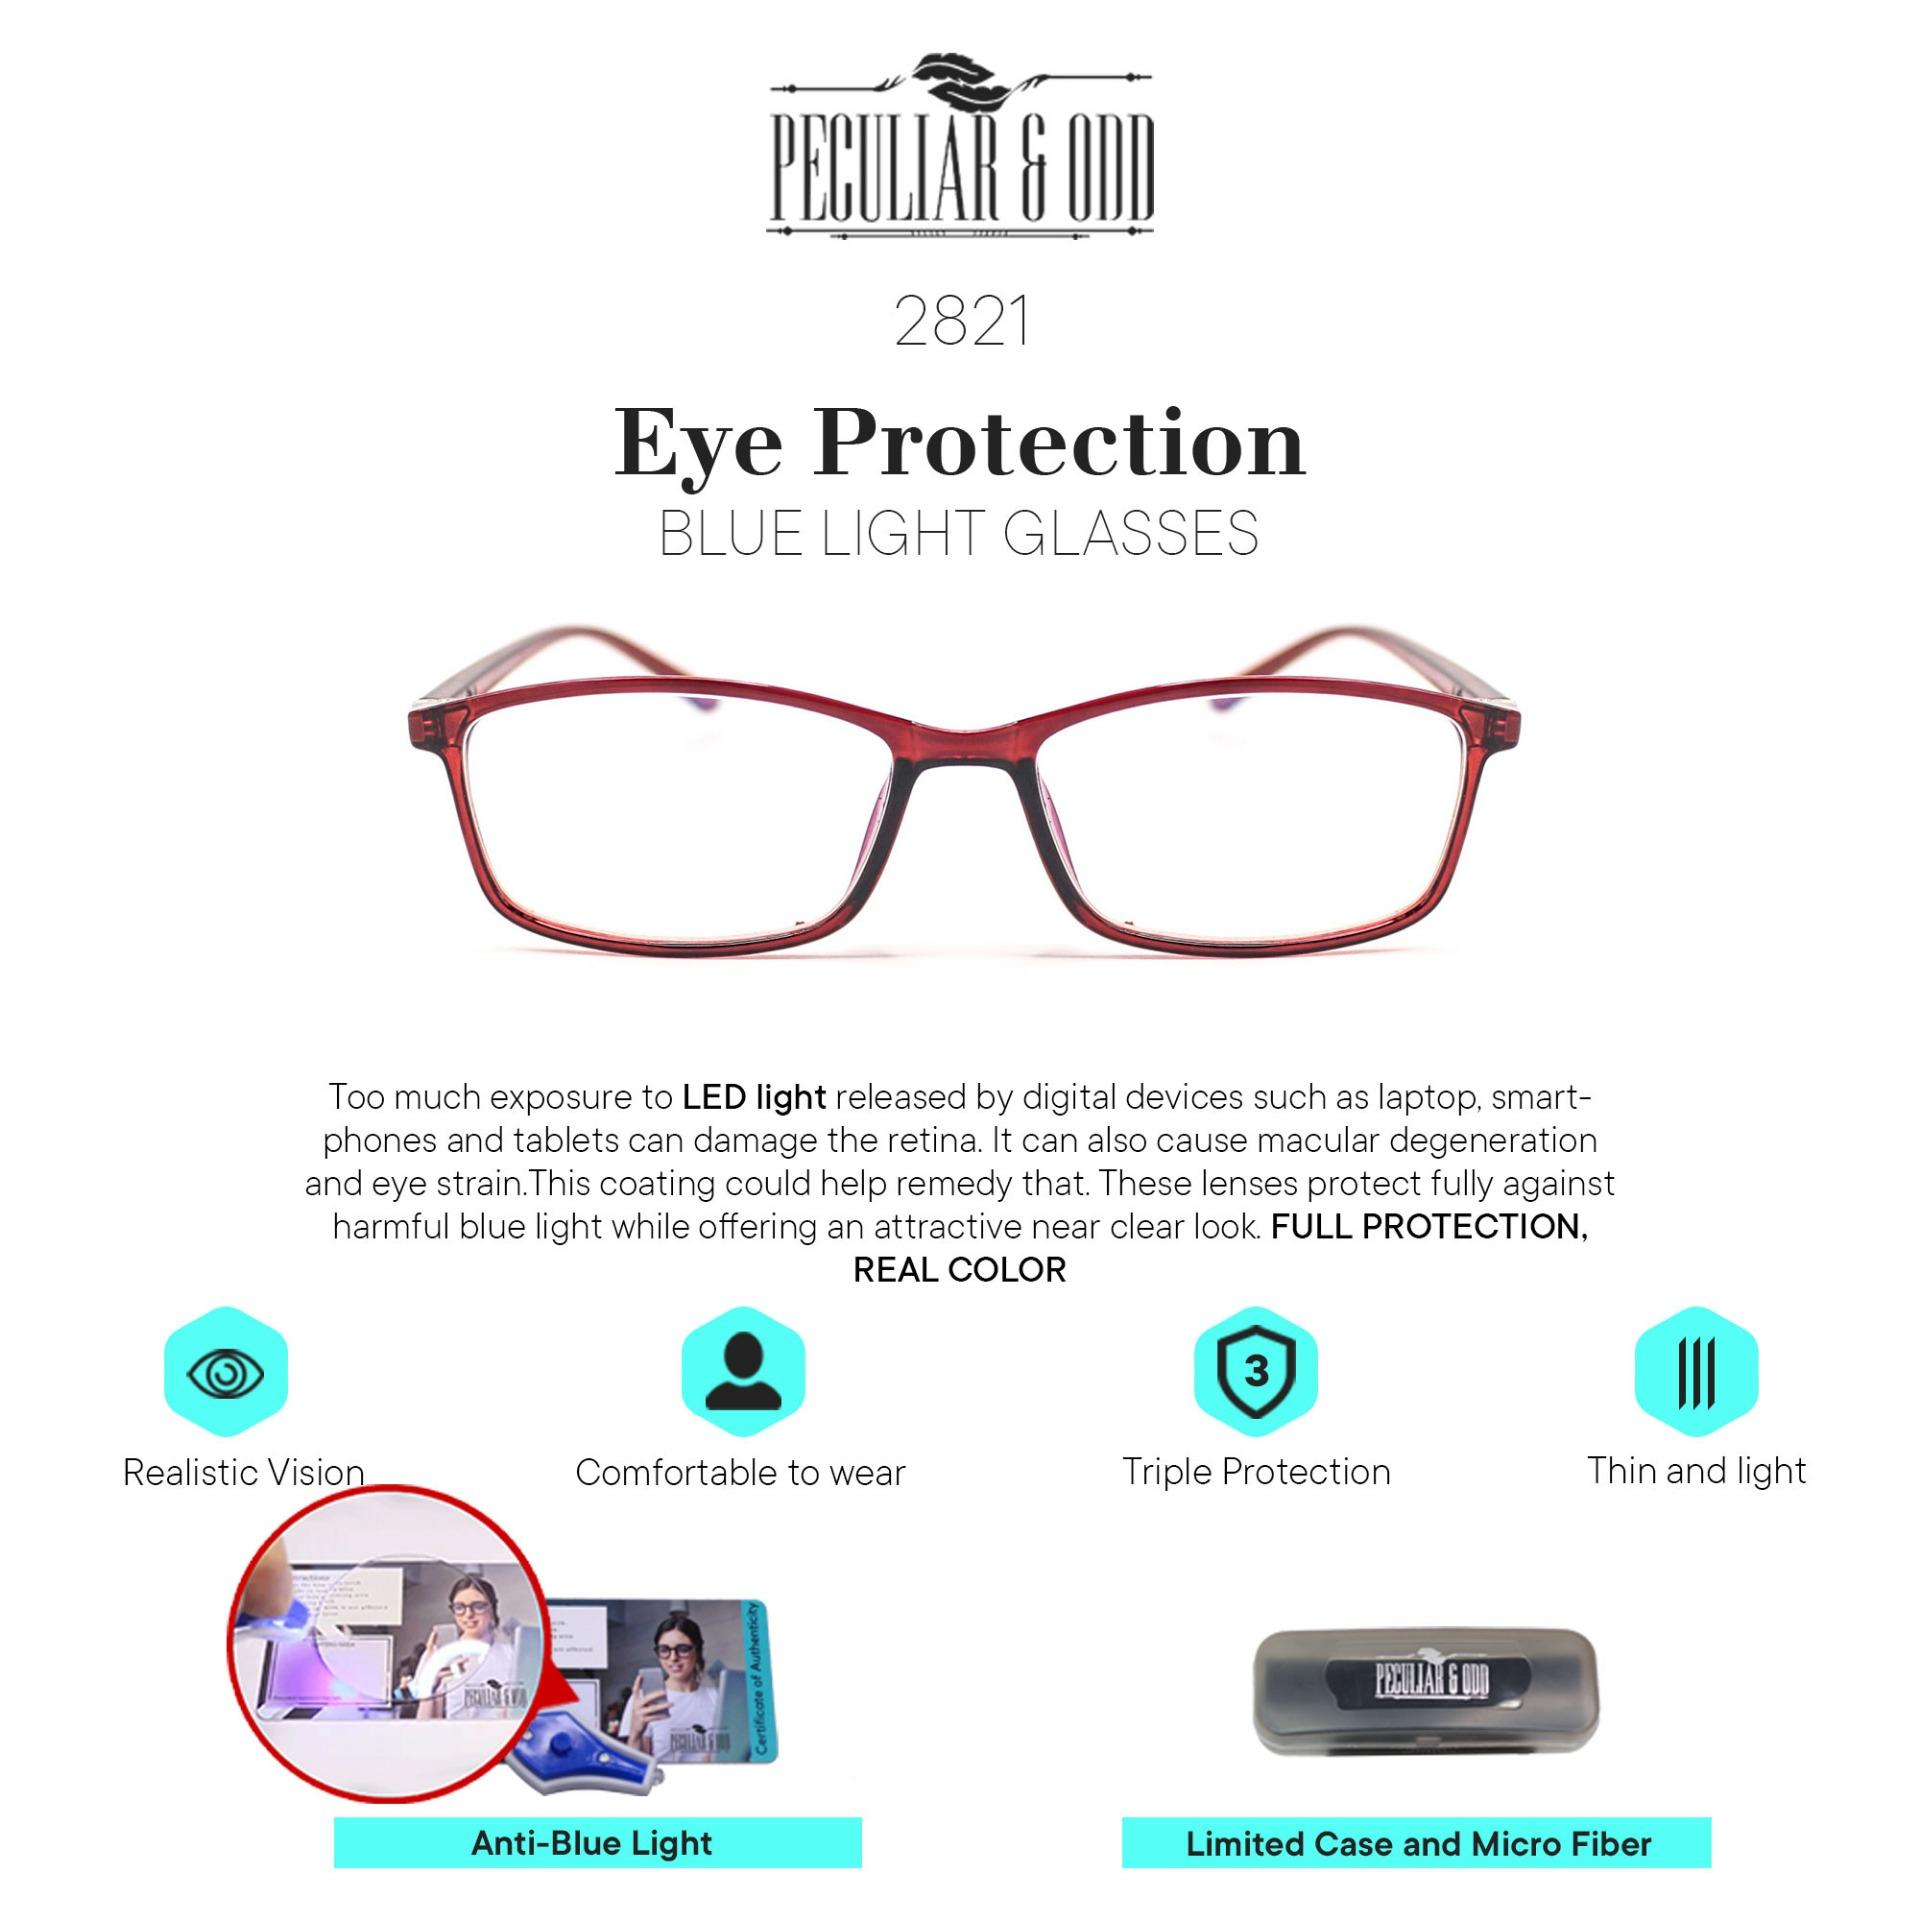 836a8a79f Peculiar Square 2821 Anti-Radiation Lenses Lightweight Replaceable for  Prescription Optical Lens Eyewear / Eyeglass